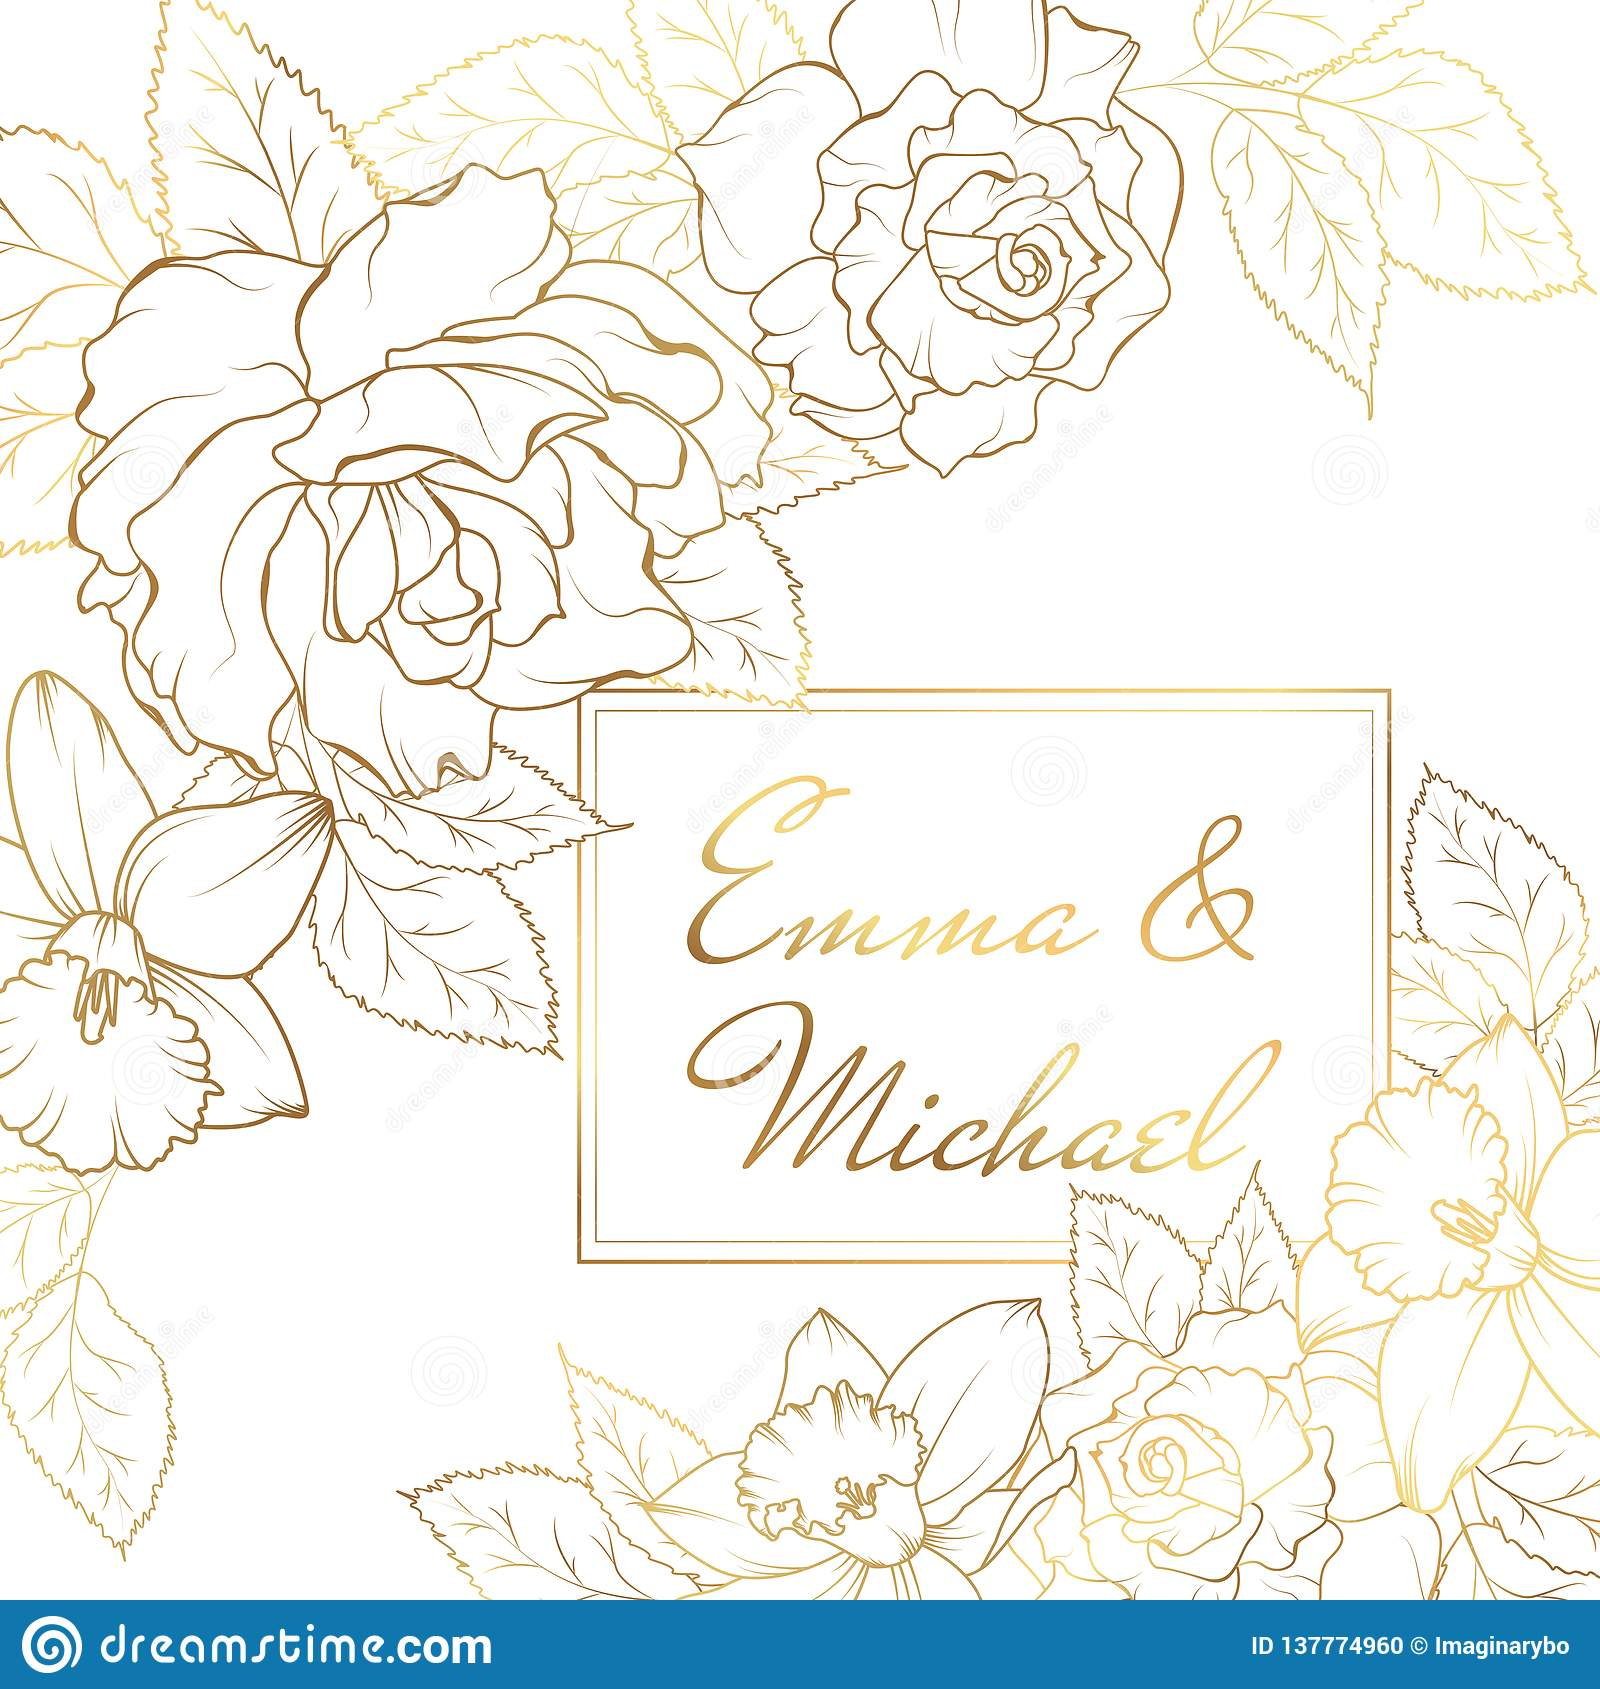 narcissus daffodil rose flowers corner frame decoration wedding marriage event invitation card template stock vector illustration of light card 137774960 https www dreamstime com narcissus daffodil rose flowers corner frame decoration wedding marriage event invitation card template modern luxury bright shiny image137774960